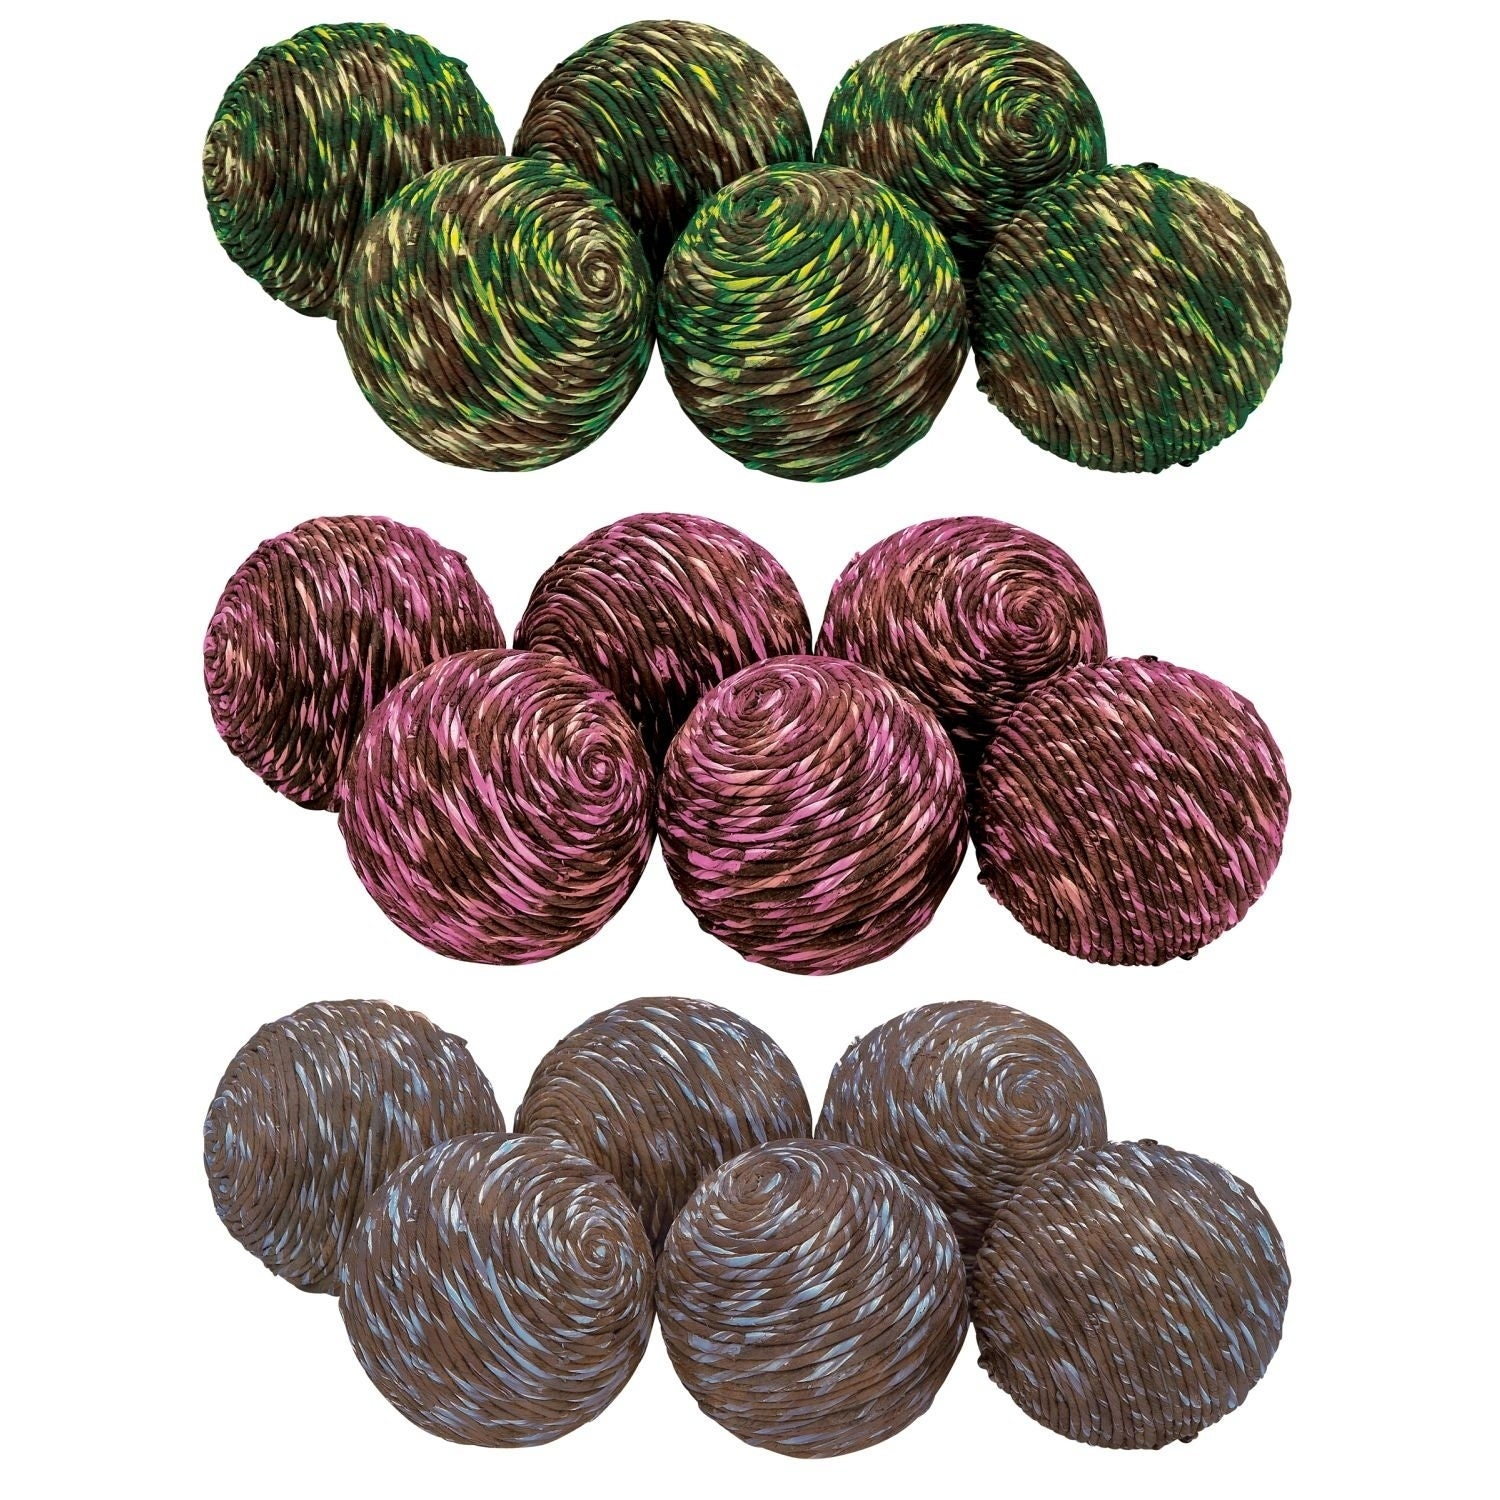 Studio 350 Dried Sola Ball Set of 3, 4 inches D, Green